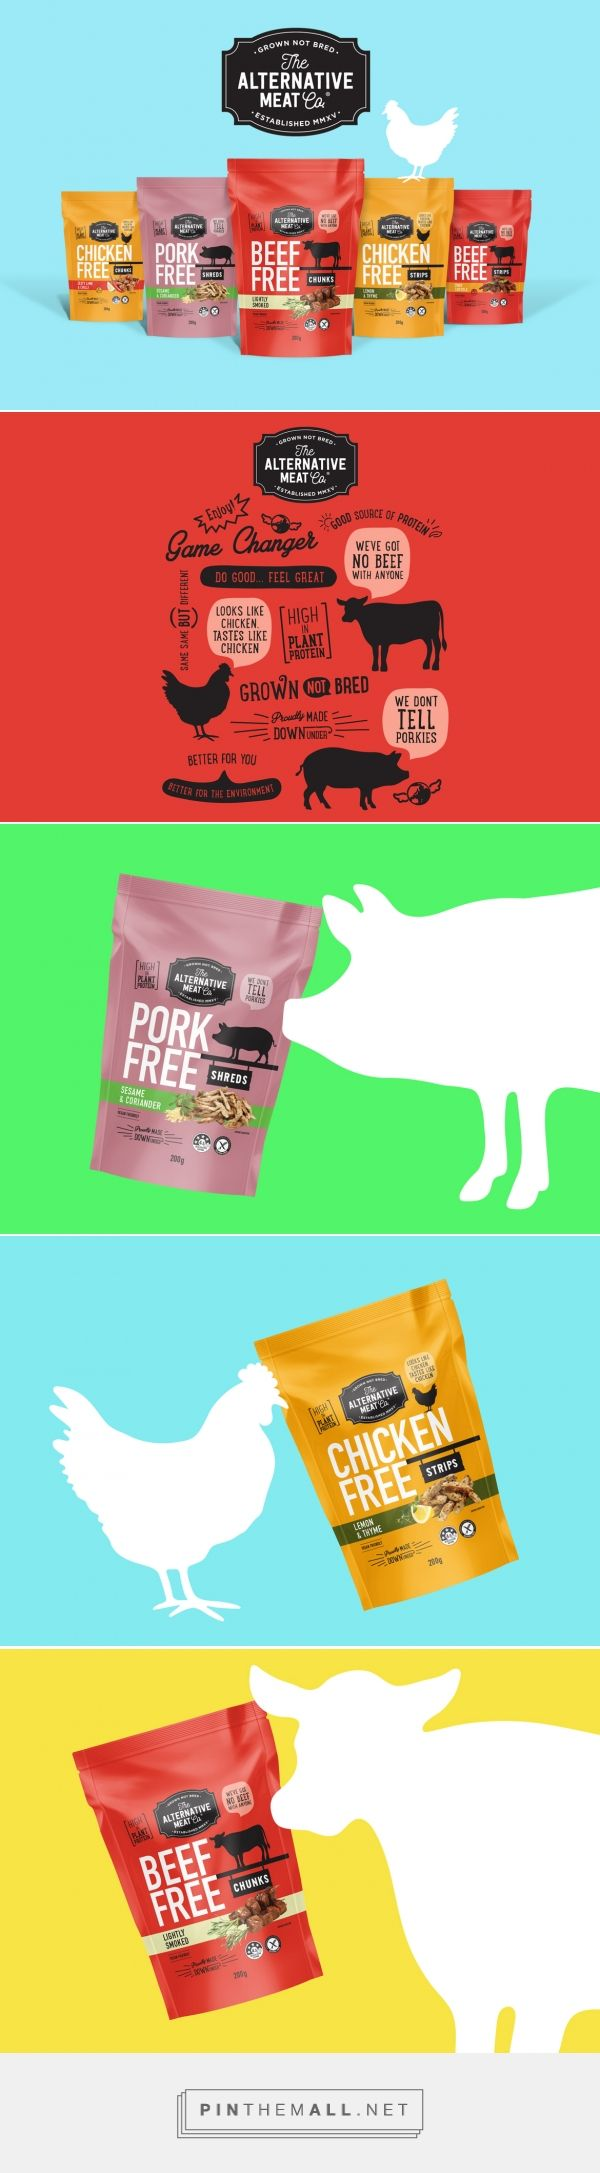 The Alternative Meat Co. - Packaging of the World - Creative Package Design Gallery - http://www.packagingoftheworld.com/2017/08/the-alternative-meat-co-flavour-range.html